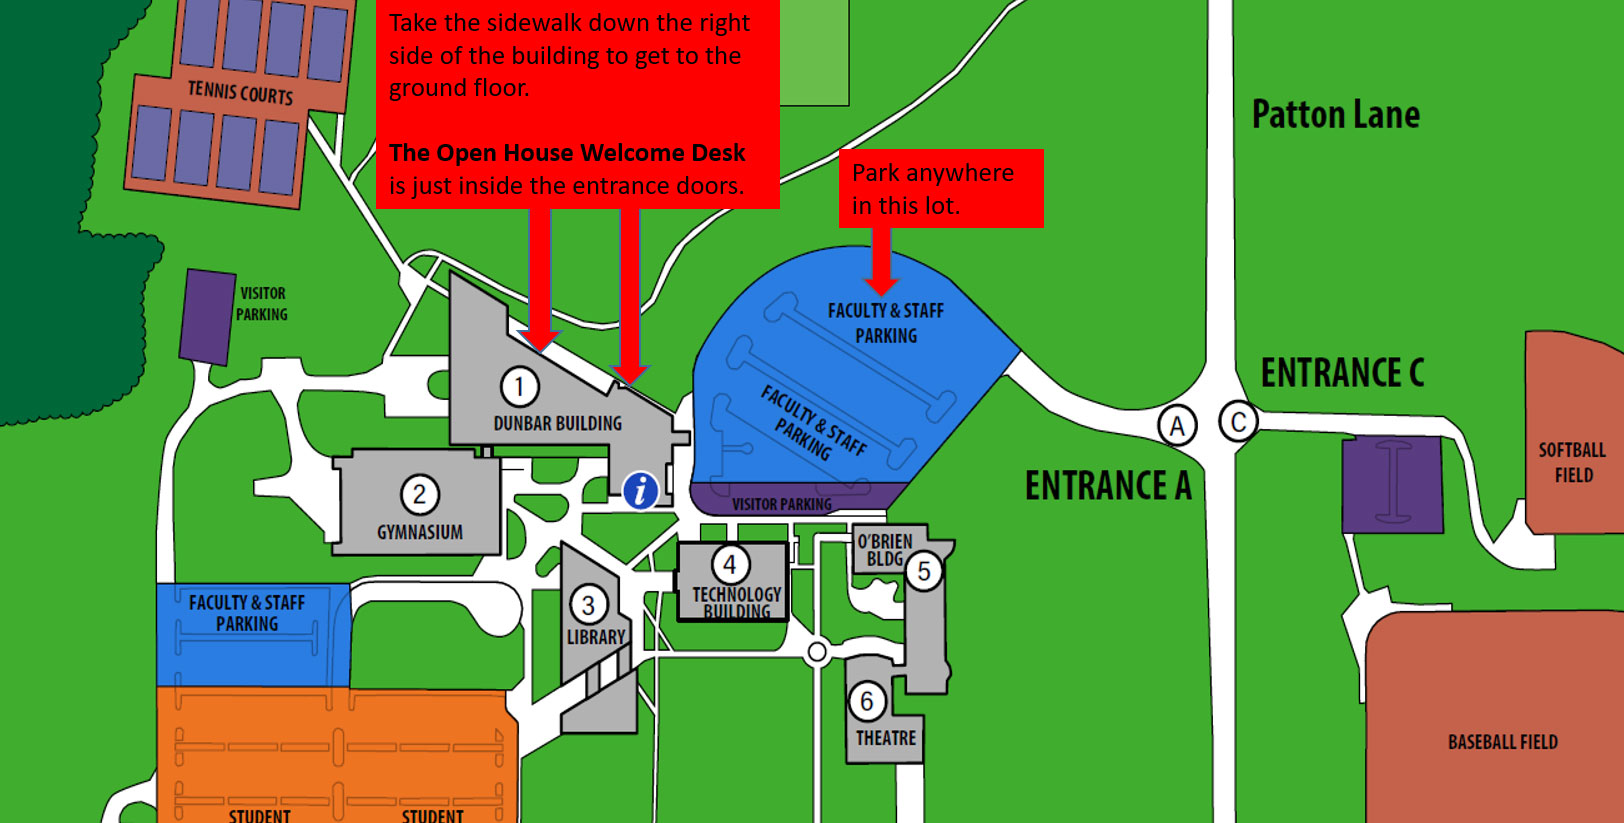 Map shows entering via the north entrance off Patton lane. Park in this parking lot and take the north sidewalk to the entrance of the student center.